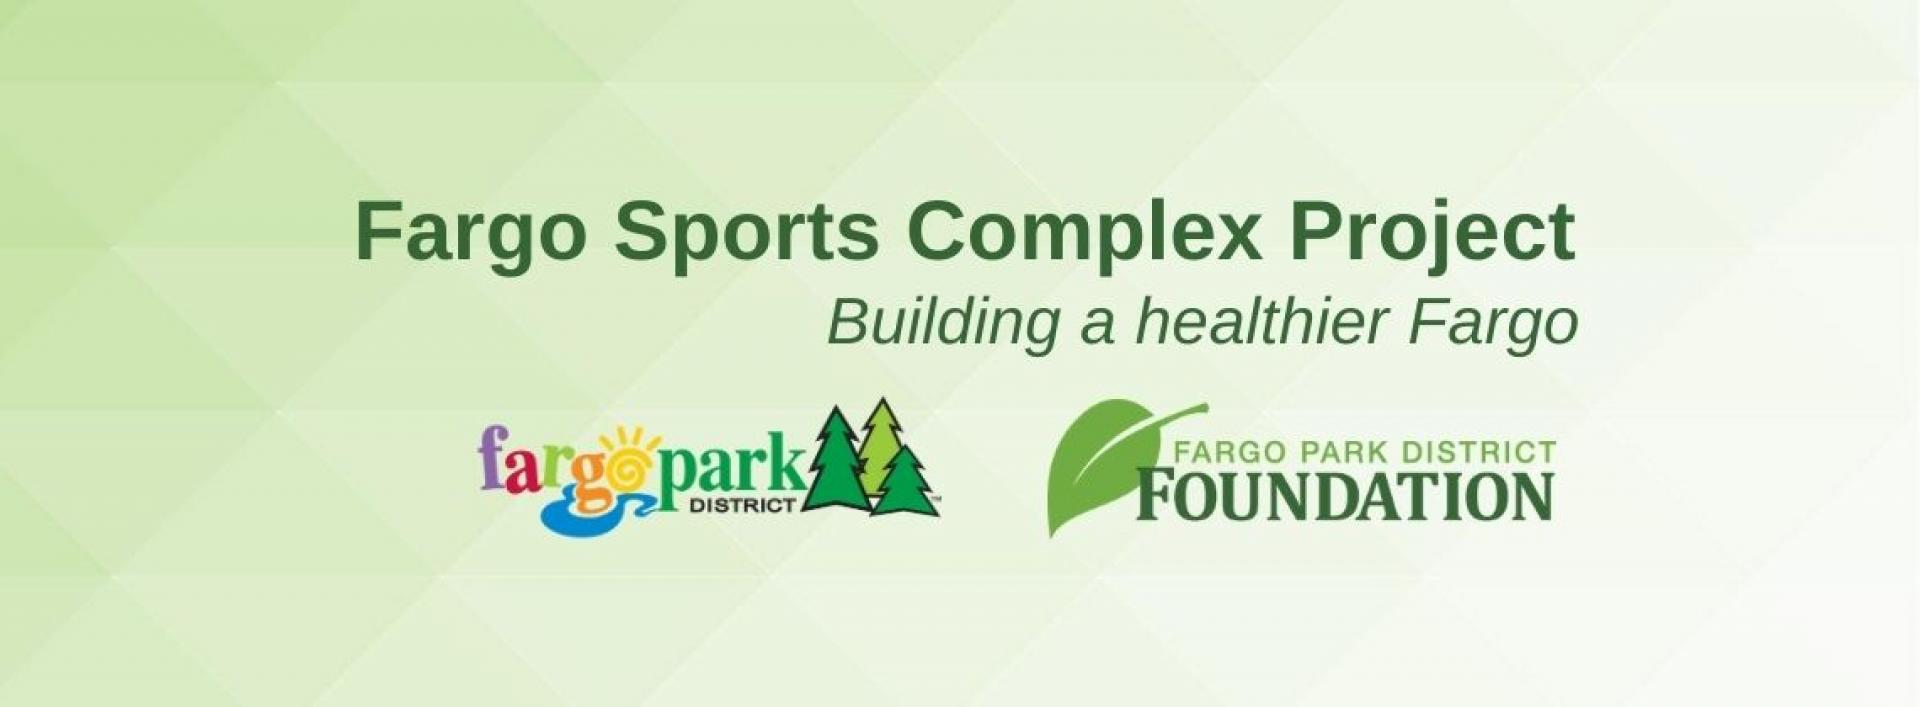 Graphic reads 'Fargo Sports Complex Project, Building a healthier Fargo' with Fargo Parks and Fargo Parks Foundation logos